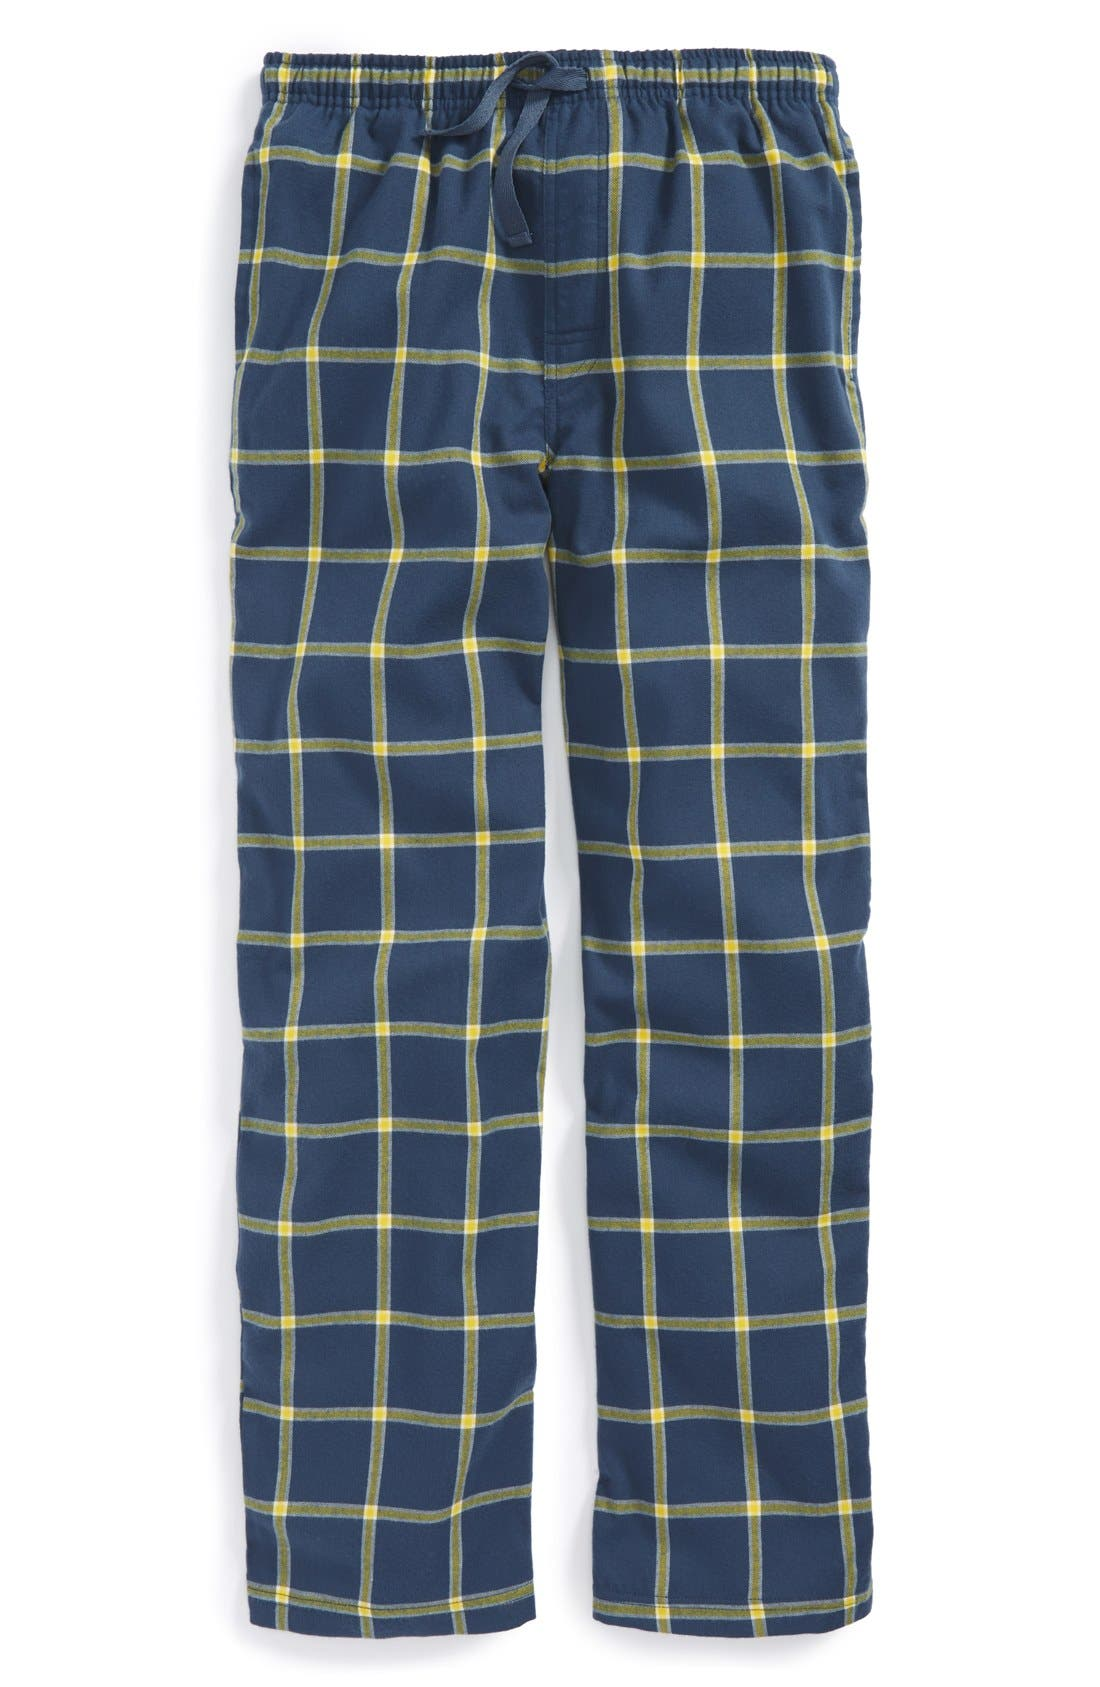 Main Image - Tucker + Tate Flannel Pajama Pants (Little Boys & Big Boys)